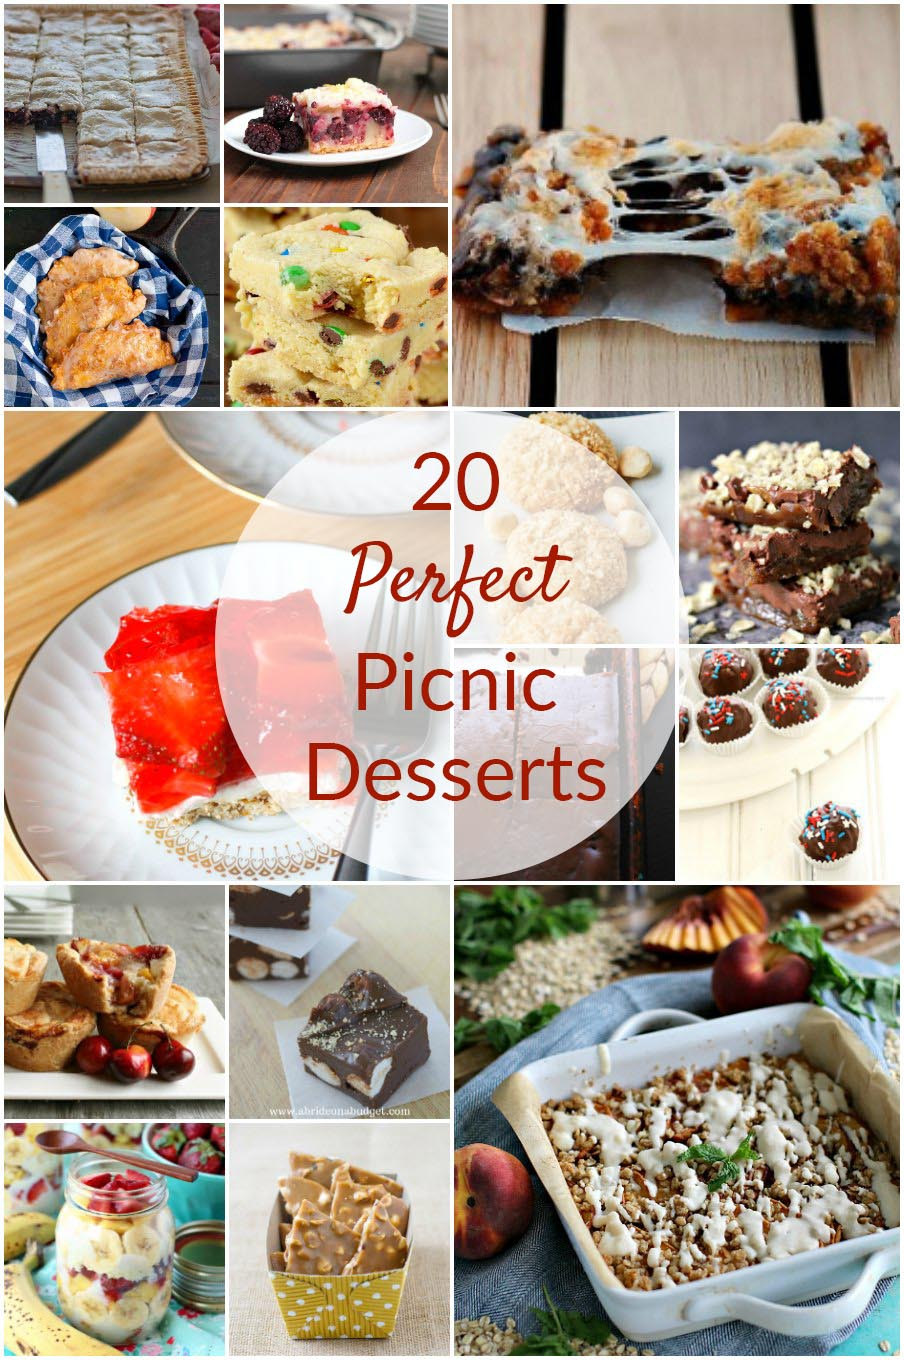 No picnic should be without dessert. Here are 20 delicious picnic desserts that will provide the perfect sweet end to your outdoor meal.